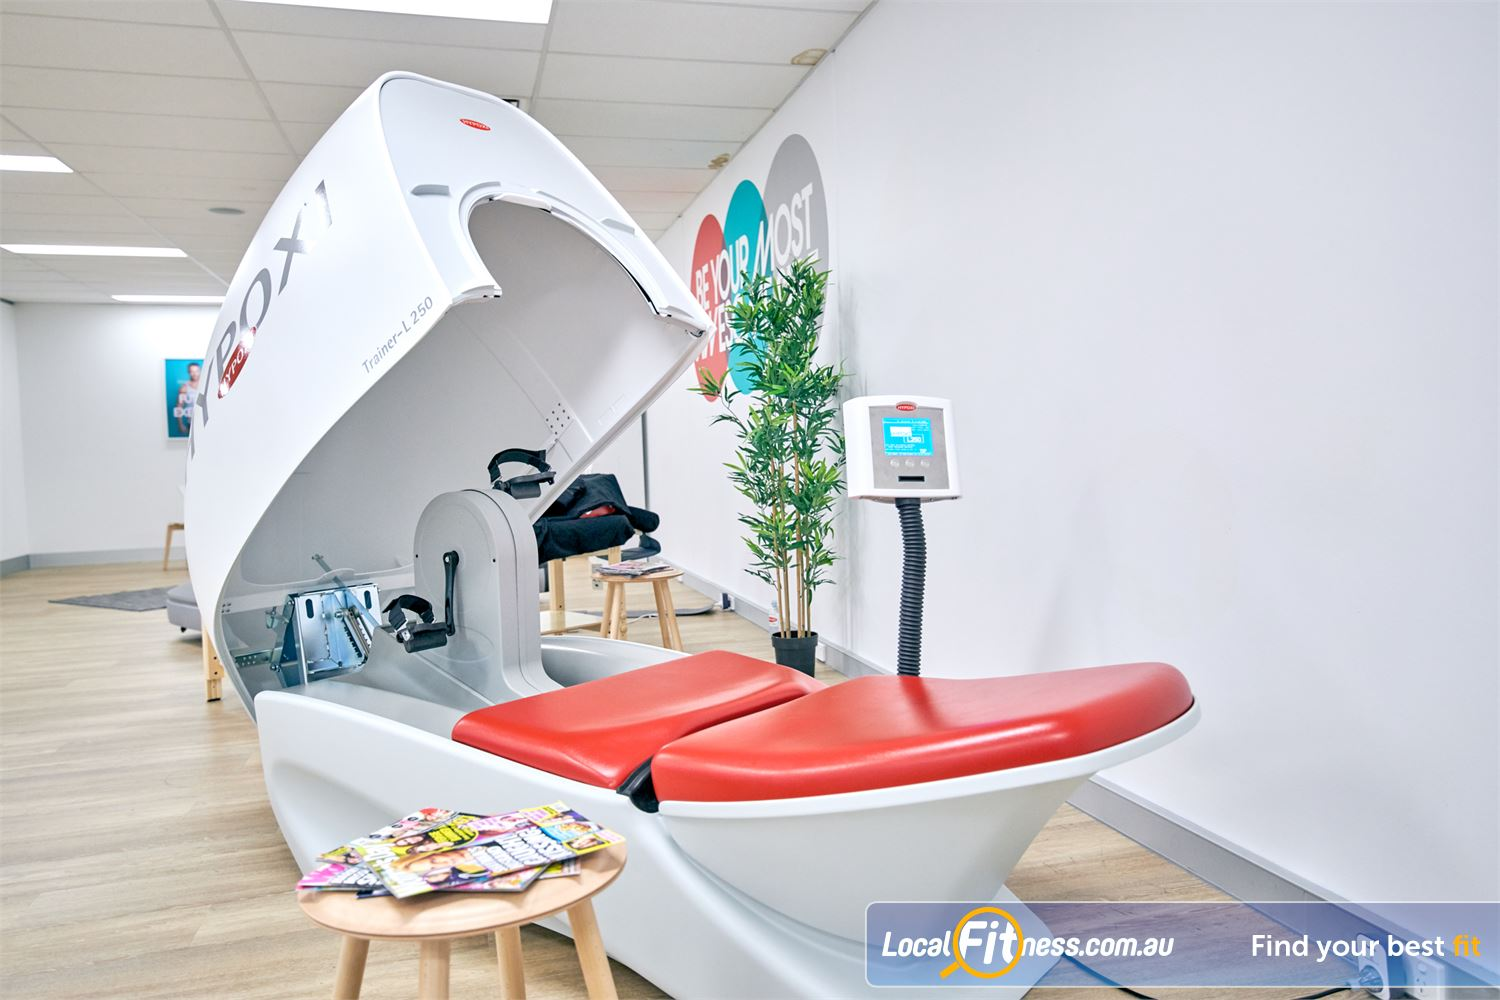 HYPOXI Weight Loss Near Heatherton All it takes is 30 minutes of low-impact exercise in our Cheltenham weight-loss studio.